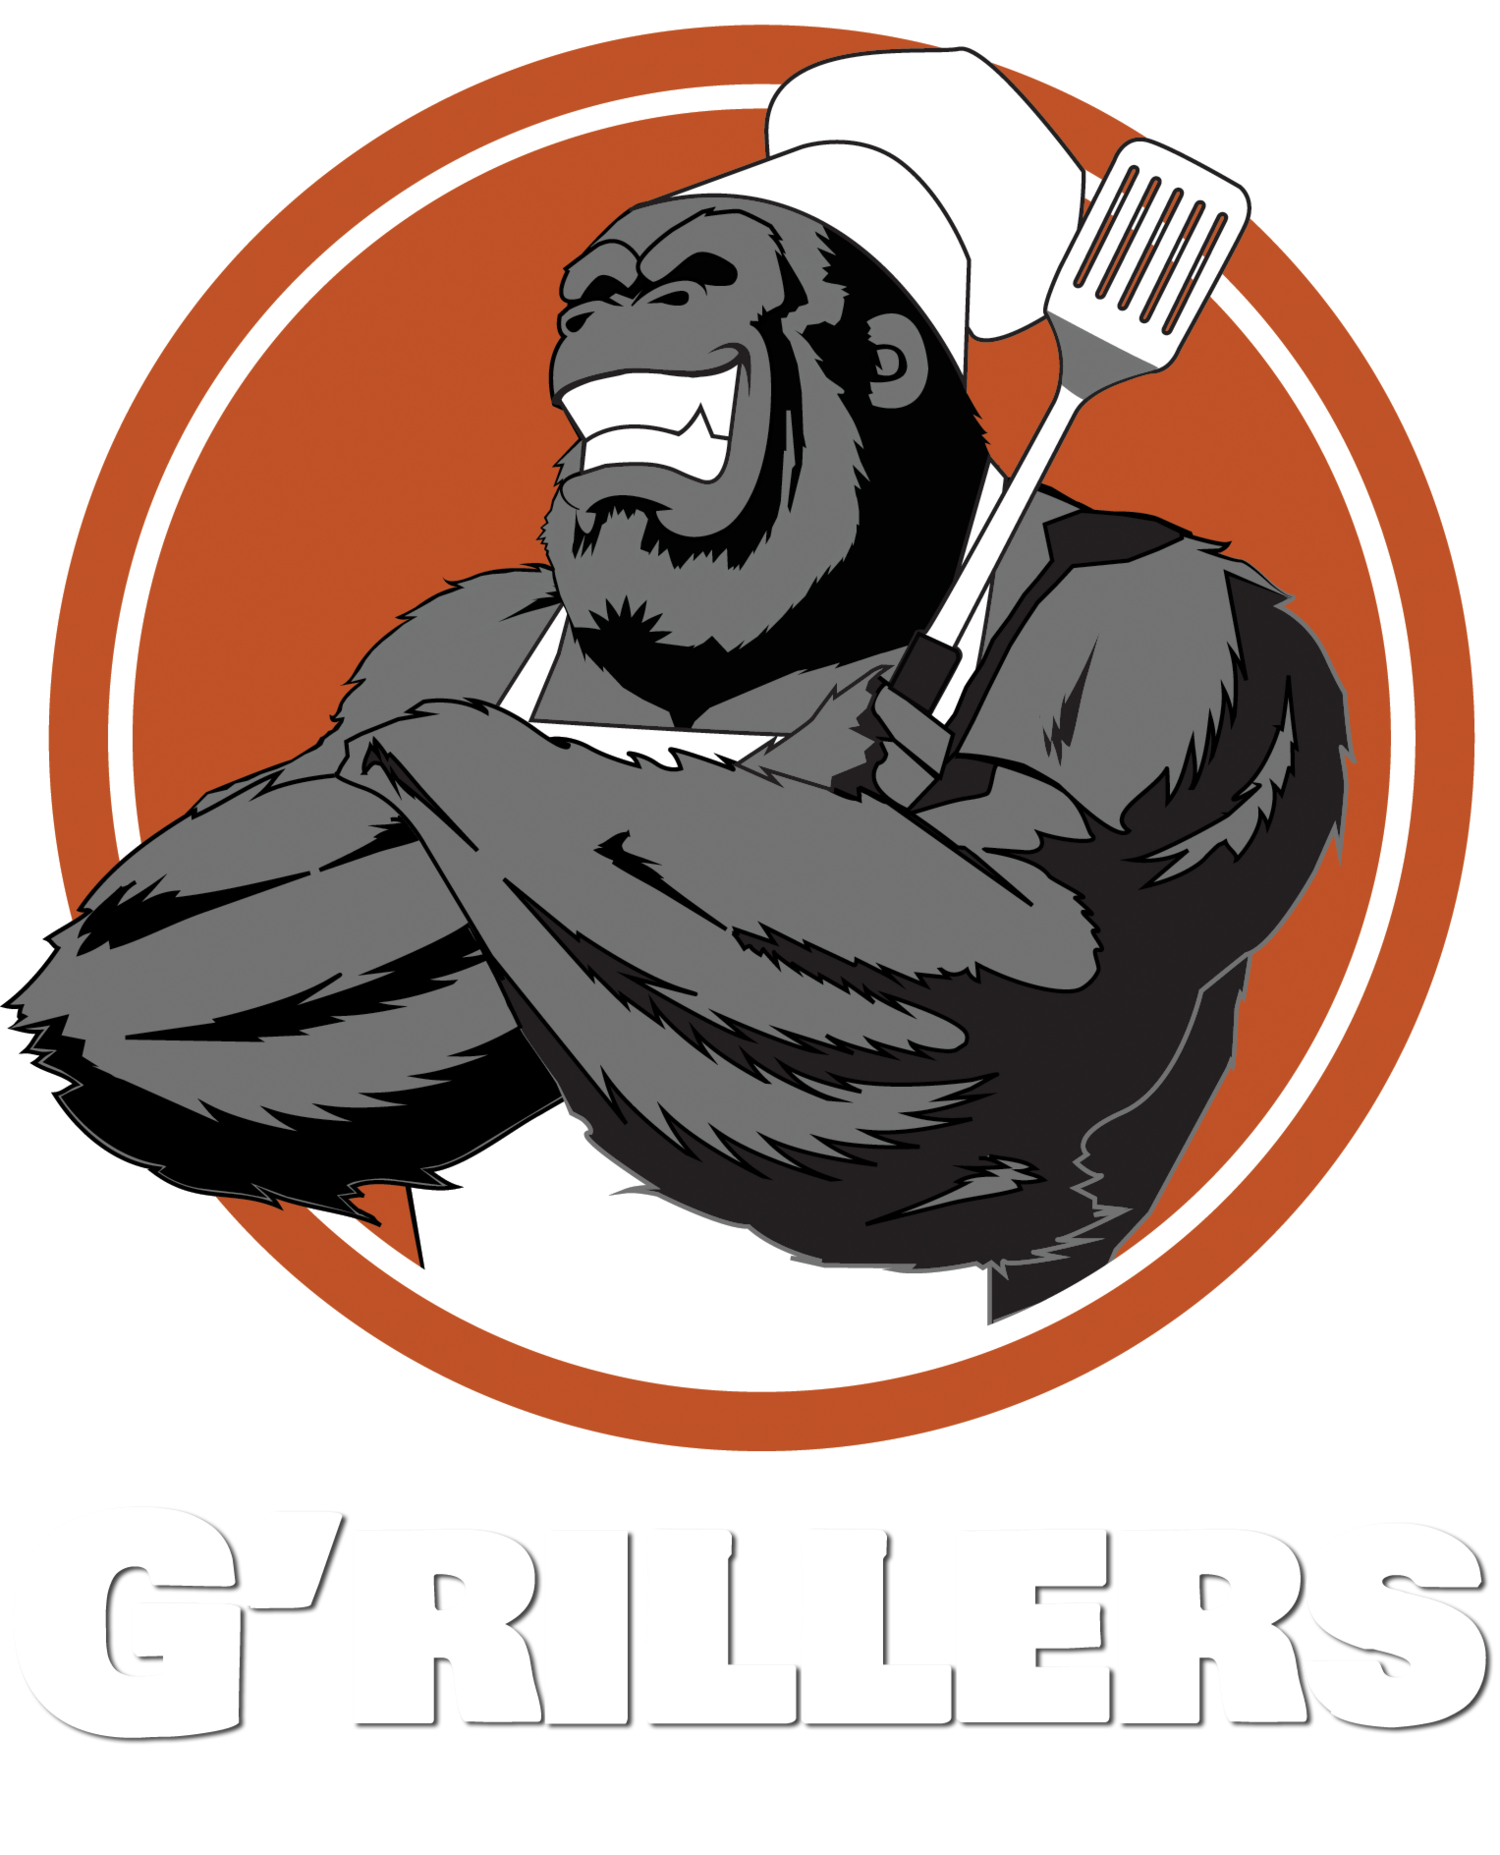 G'rillers